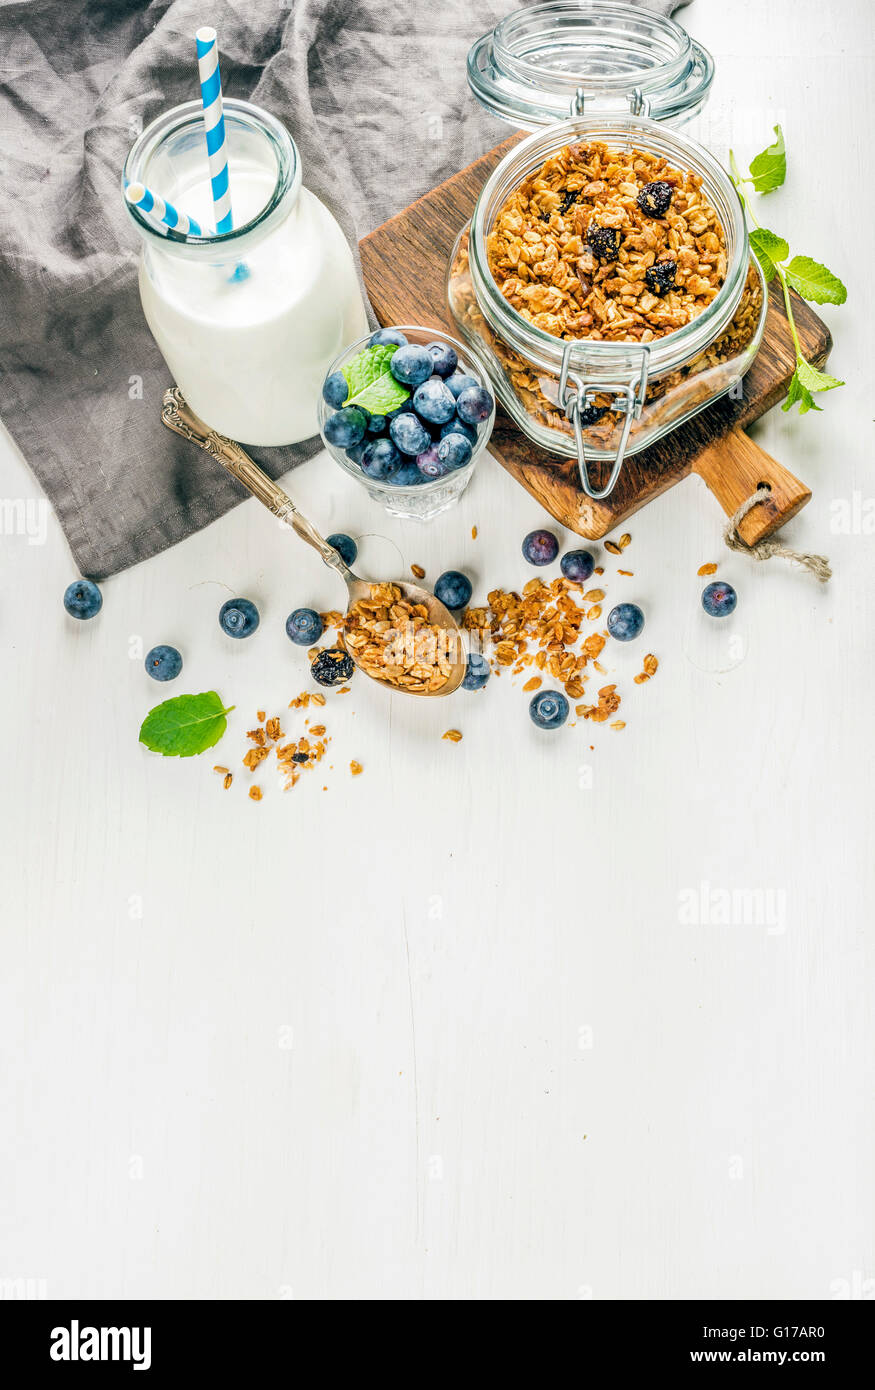 Healthy breakfast ingrediens. Homemade granola in open glass jar, milk or yogurt bottle, blueberries and mint on - Stock Image